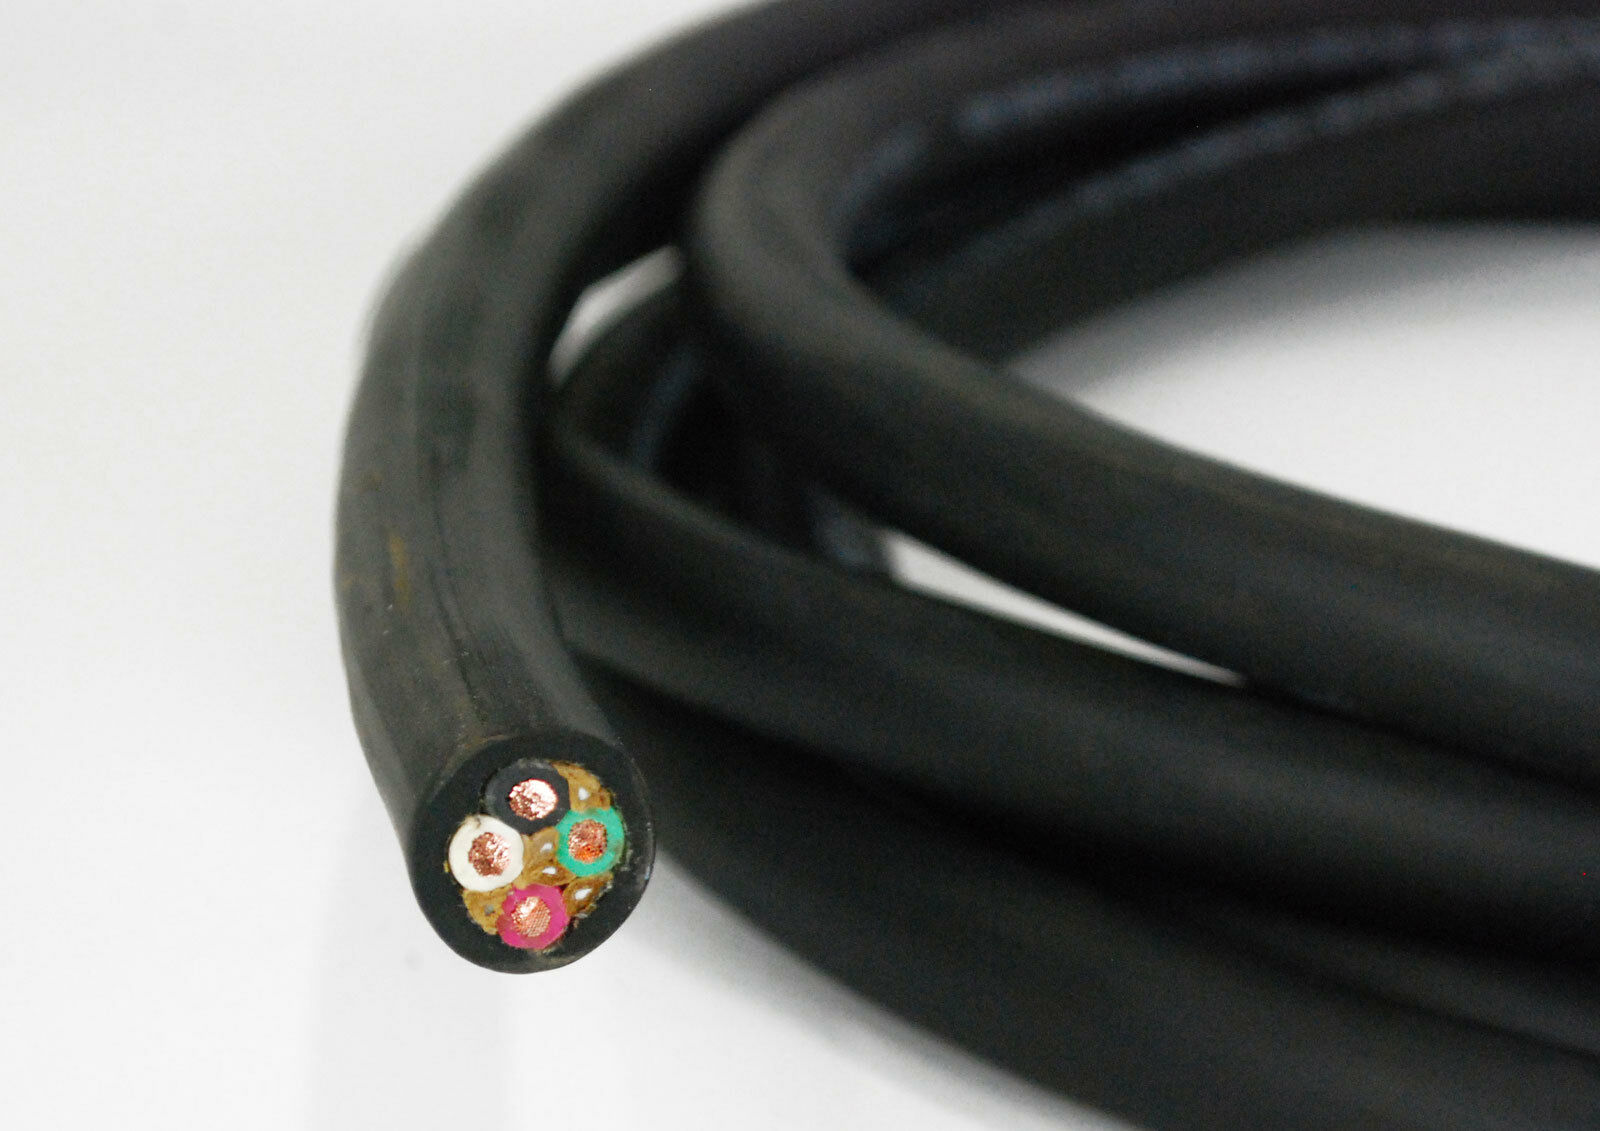 104050 50\' 10/4 Wire Cord SOOW Rubber Coated 10 Gauge 4 Conductor ...